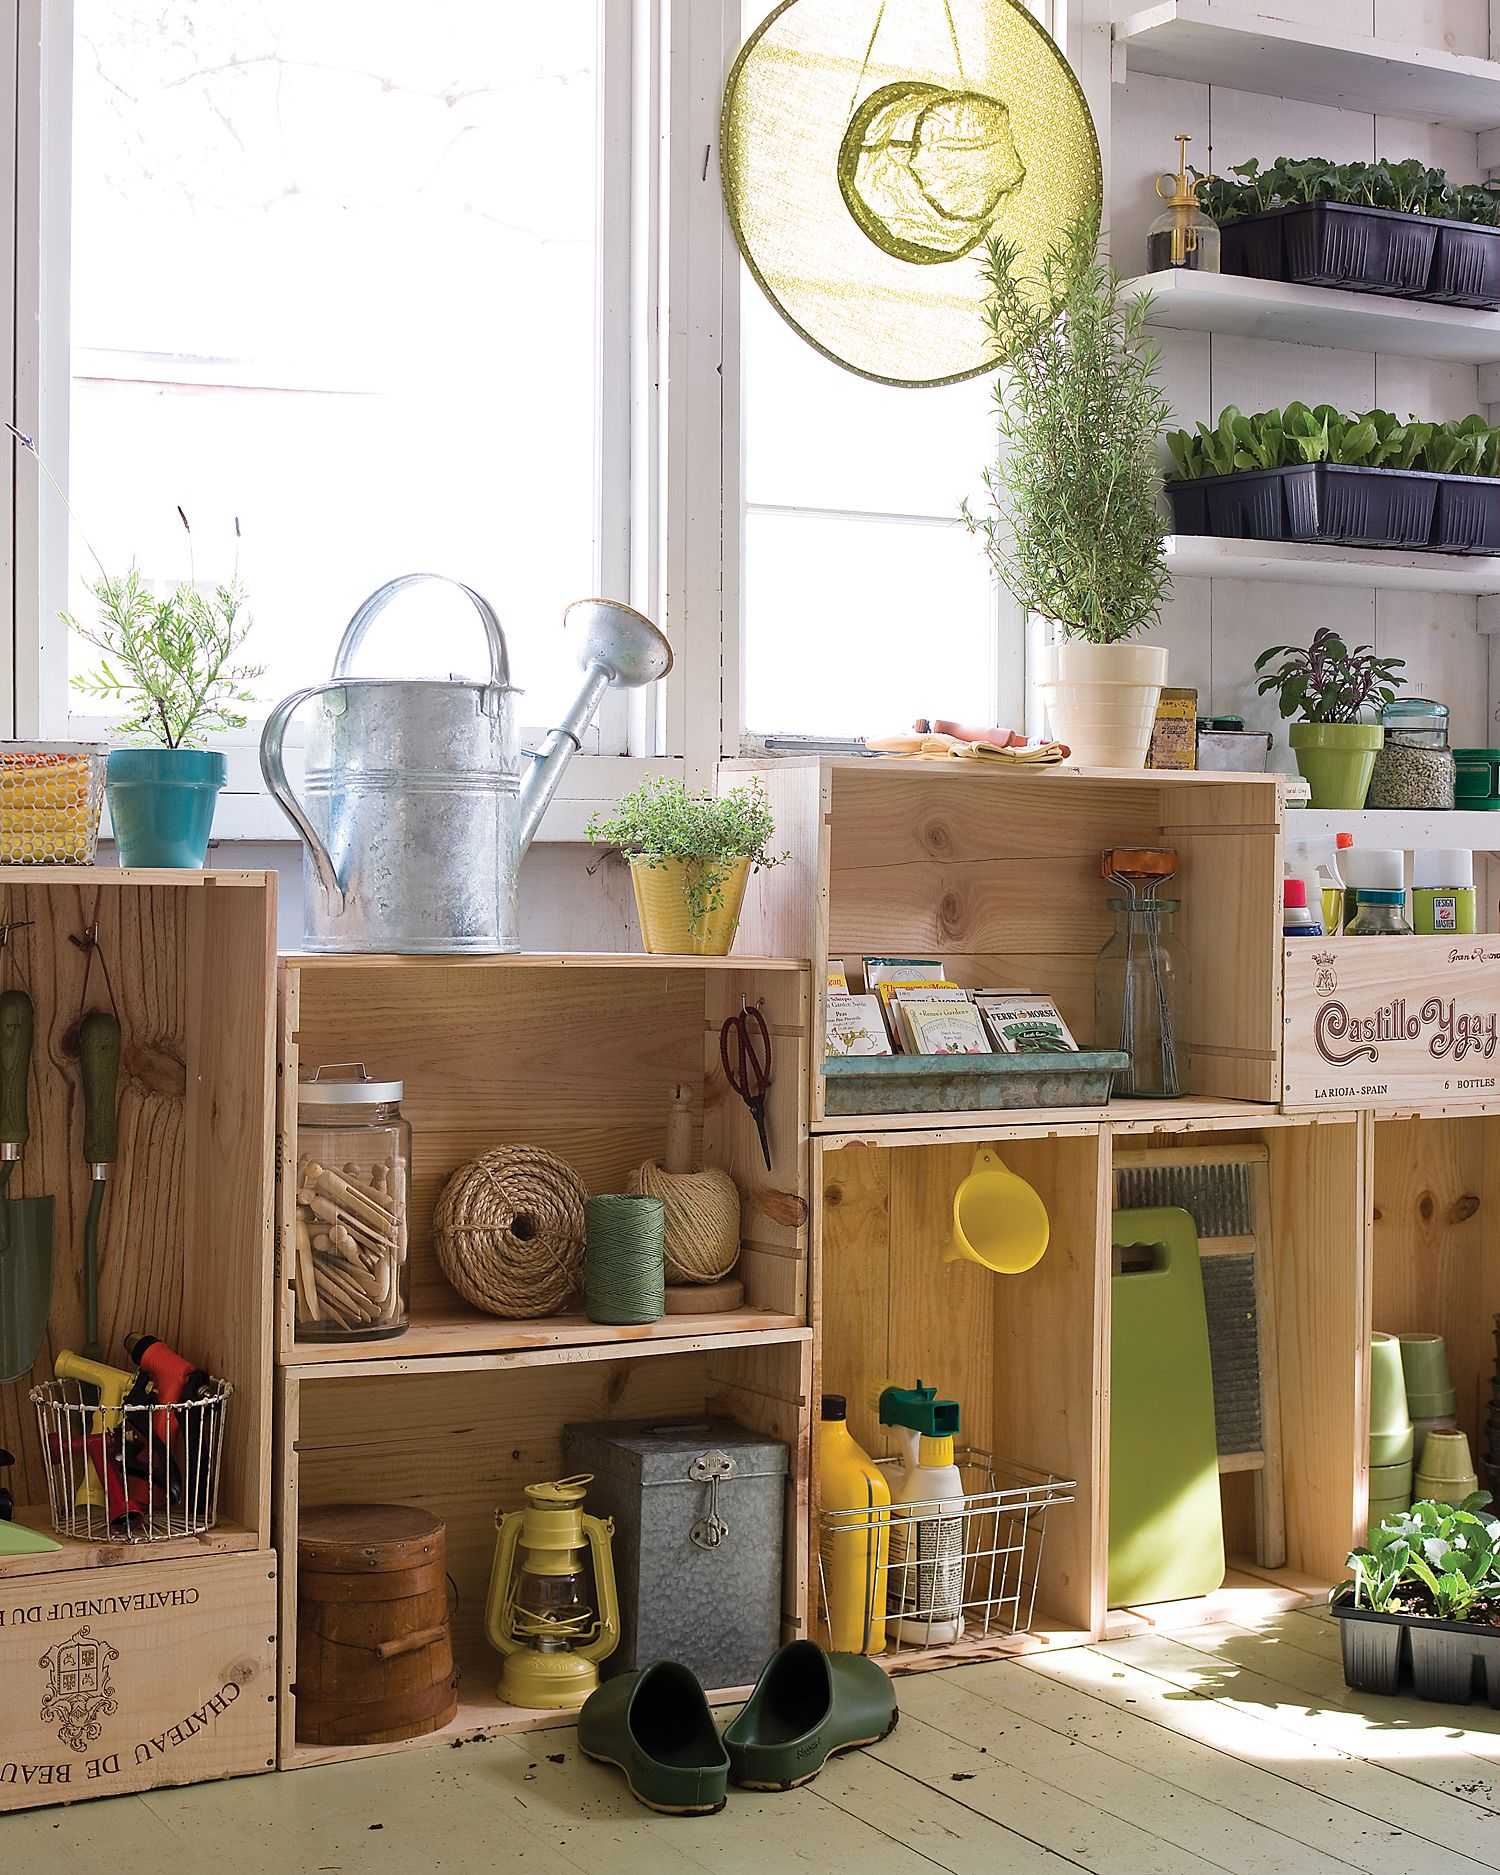 10 Tips That\'ll Make Spring Cleaning Your Garage a Breeze | Martha ...